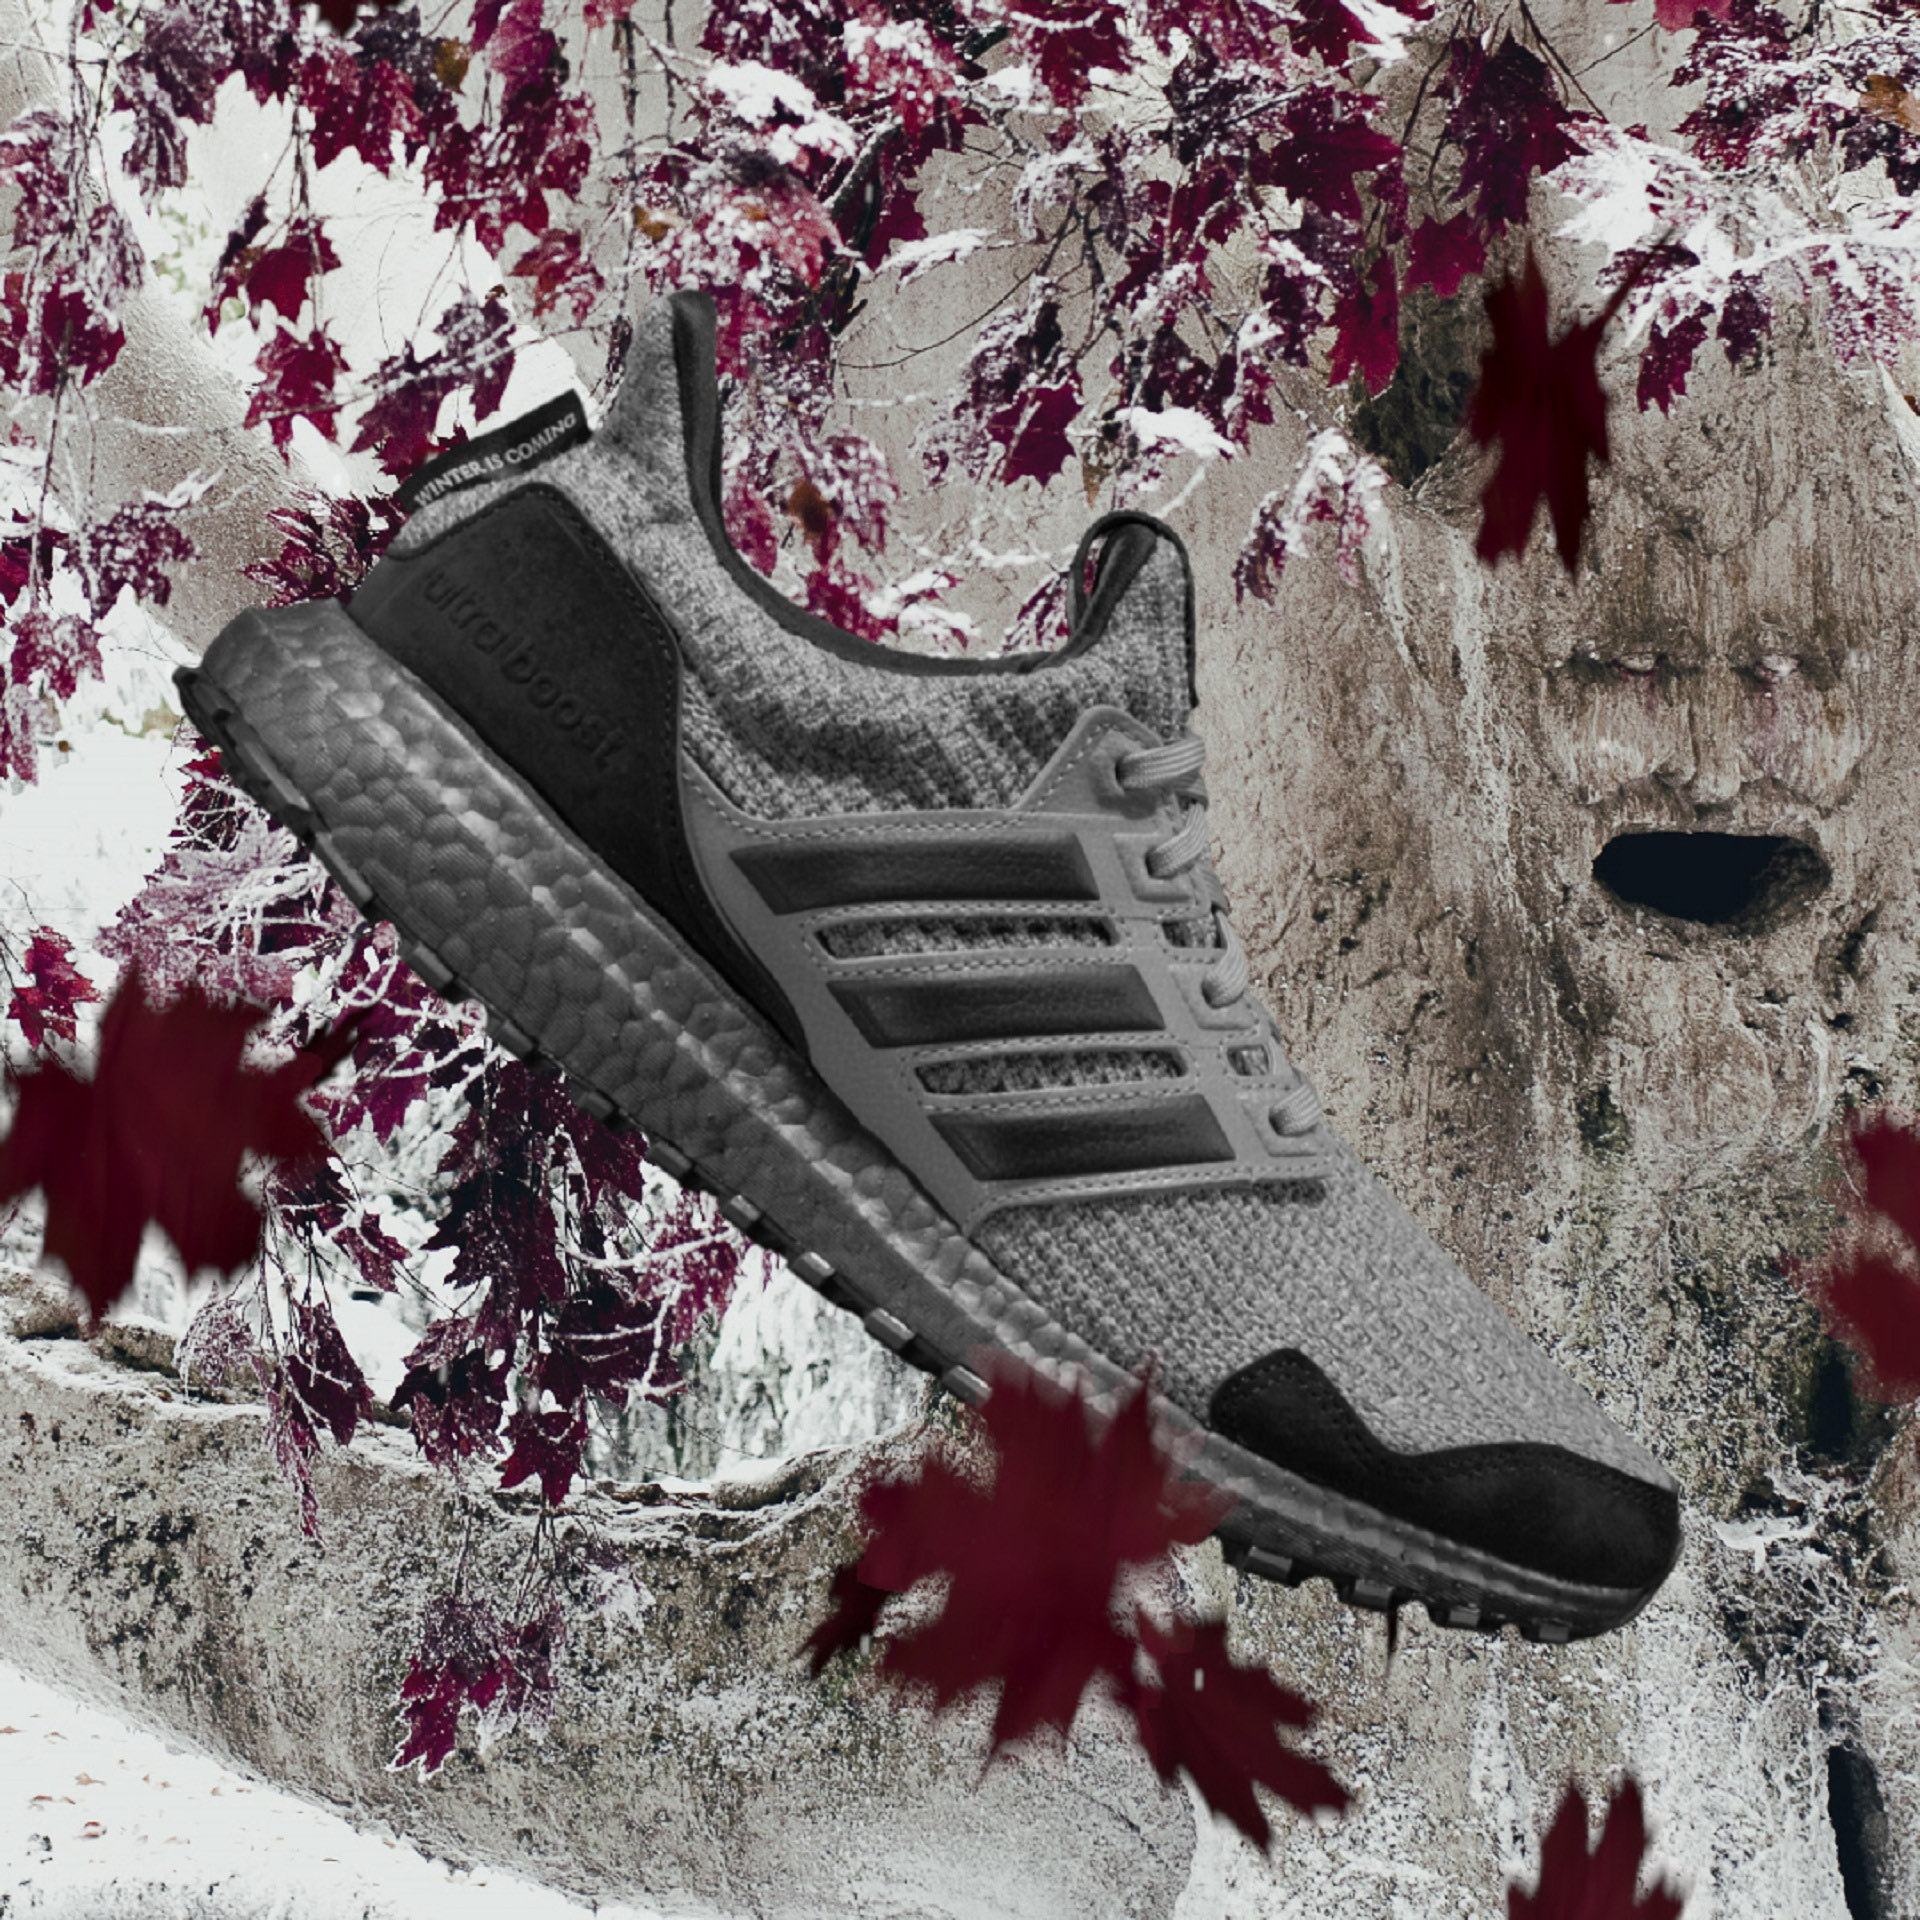 Game of Thrones x adidas UltraBOOST 15